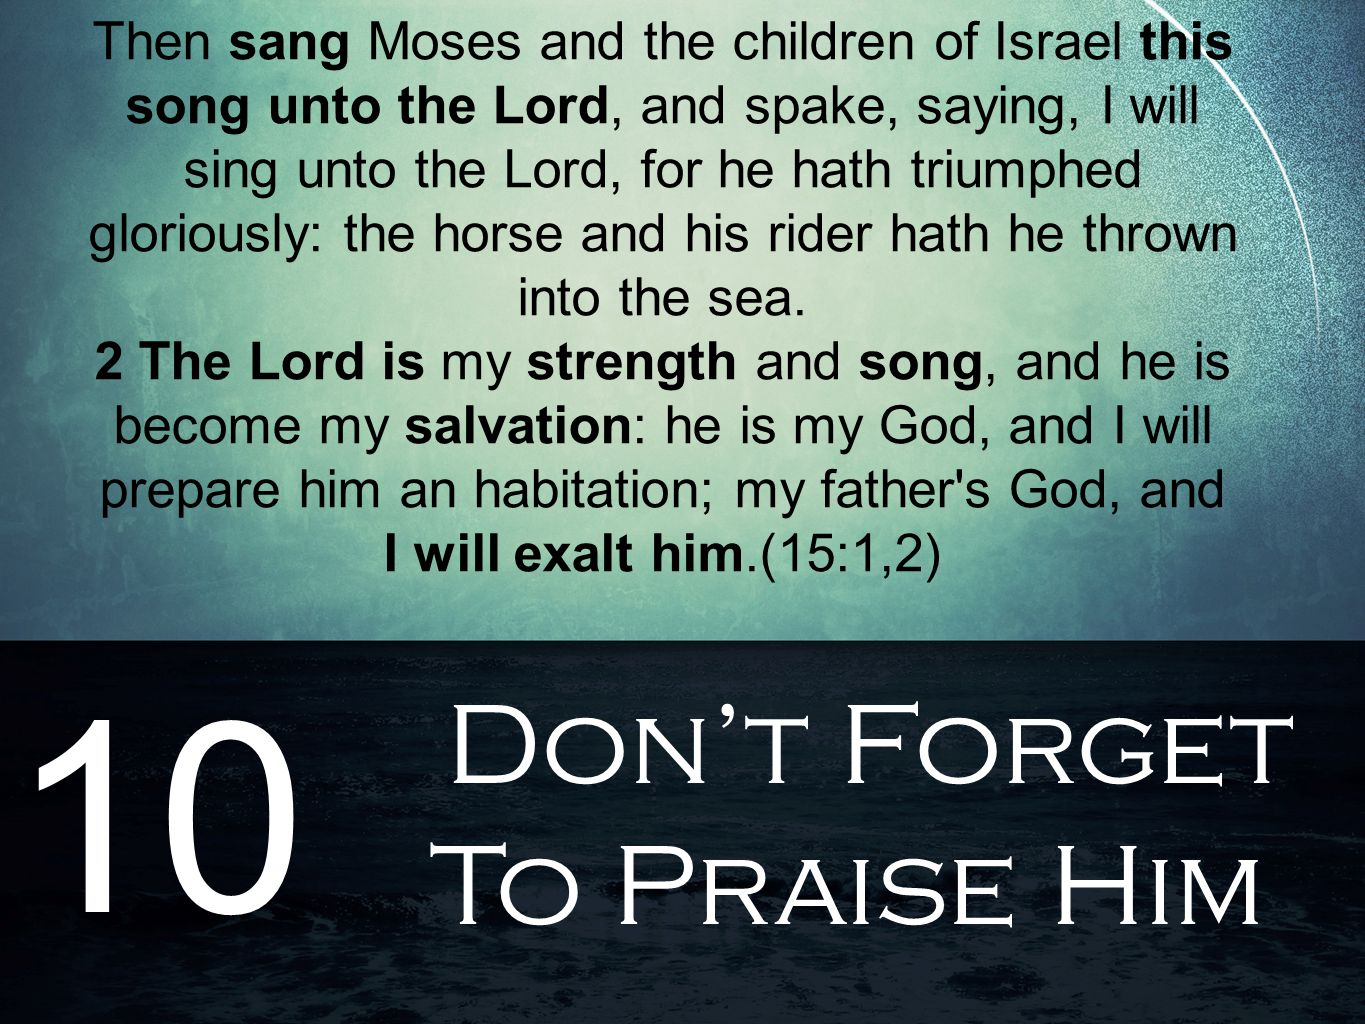 Don't Forget To Praise Him 10 Then sang Moses and the children of Israel this song unto the Lord, and spake, saying, I will sing unto the Lord, for he hath triumphed gloriously: the horse and his rider hath he thrown into the sea.